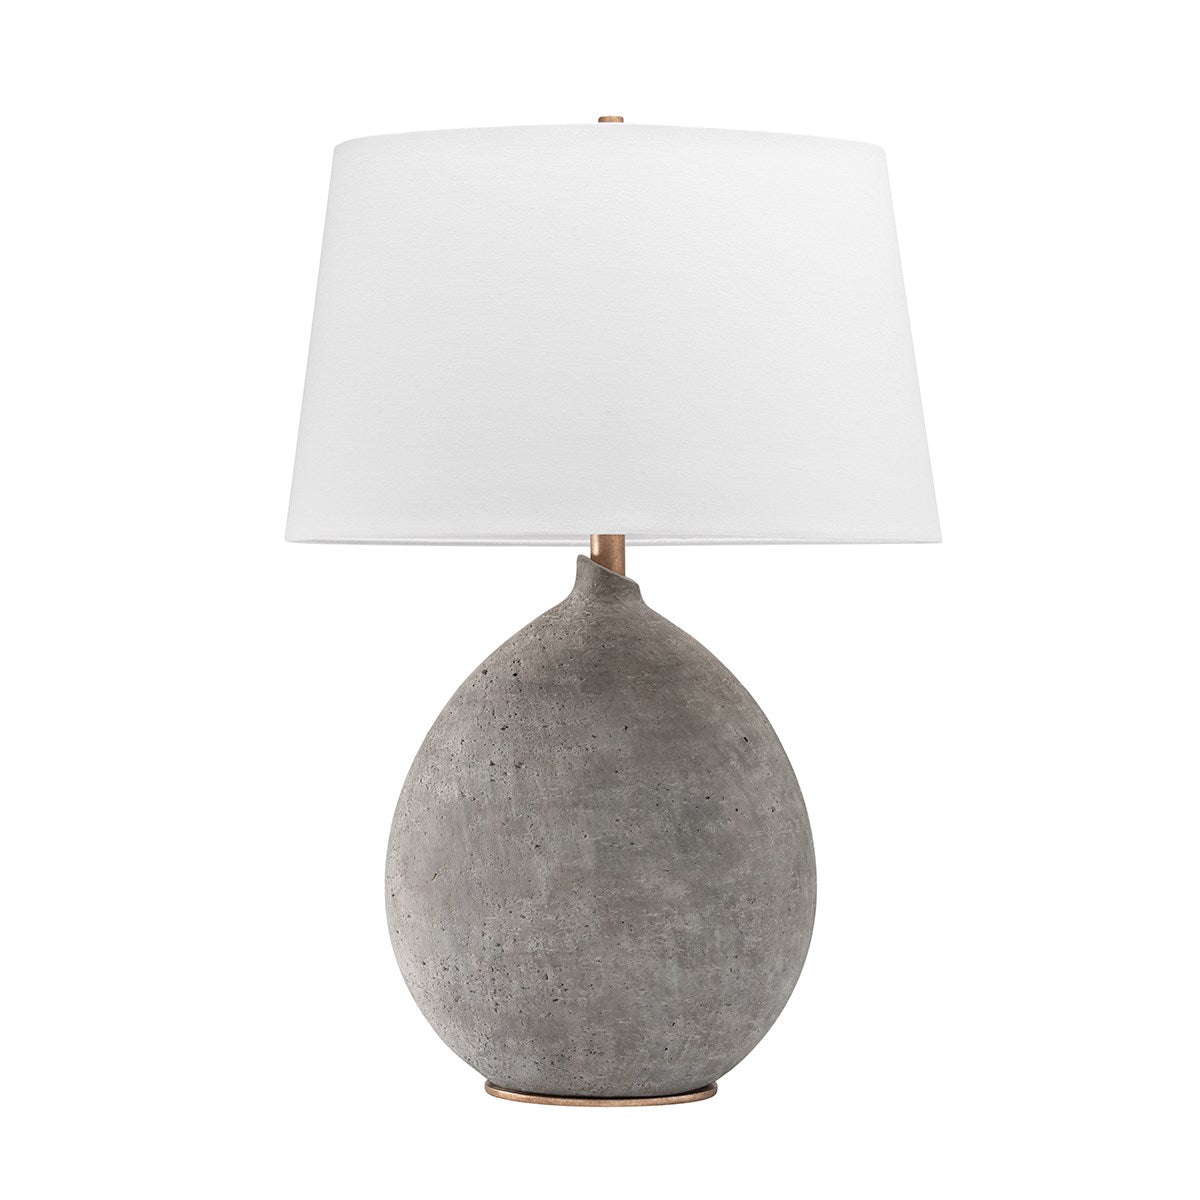 Denali Table Lamp - Rug & Weave